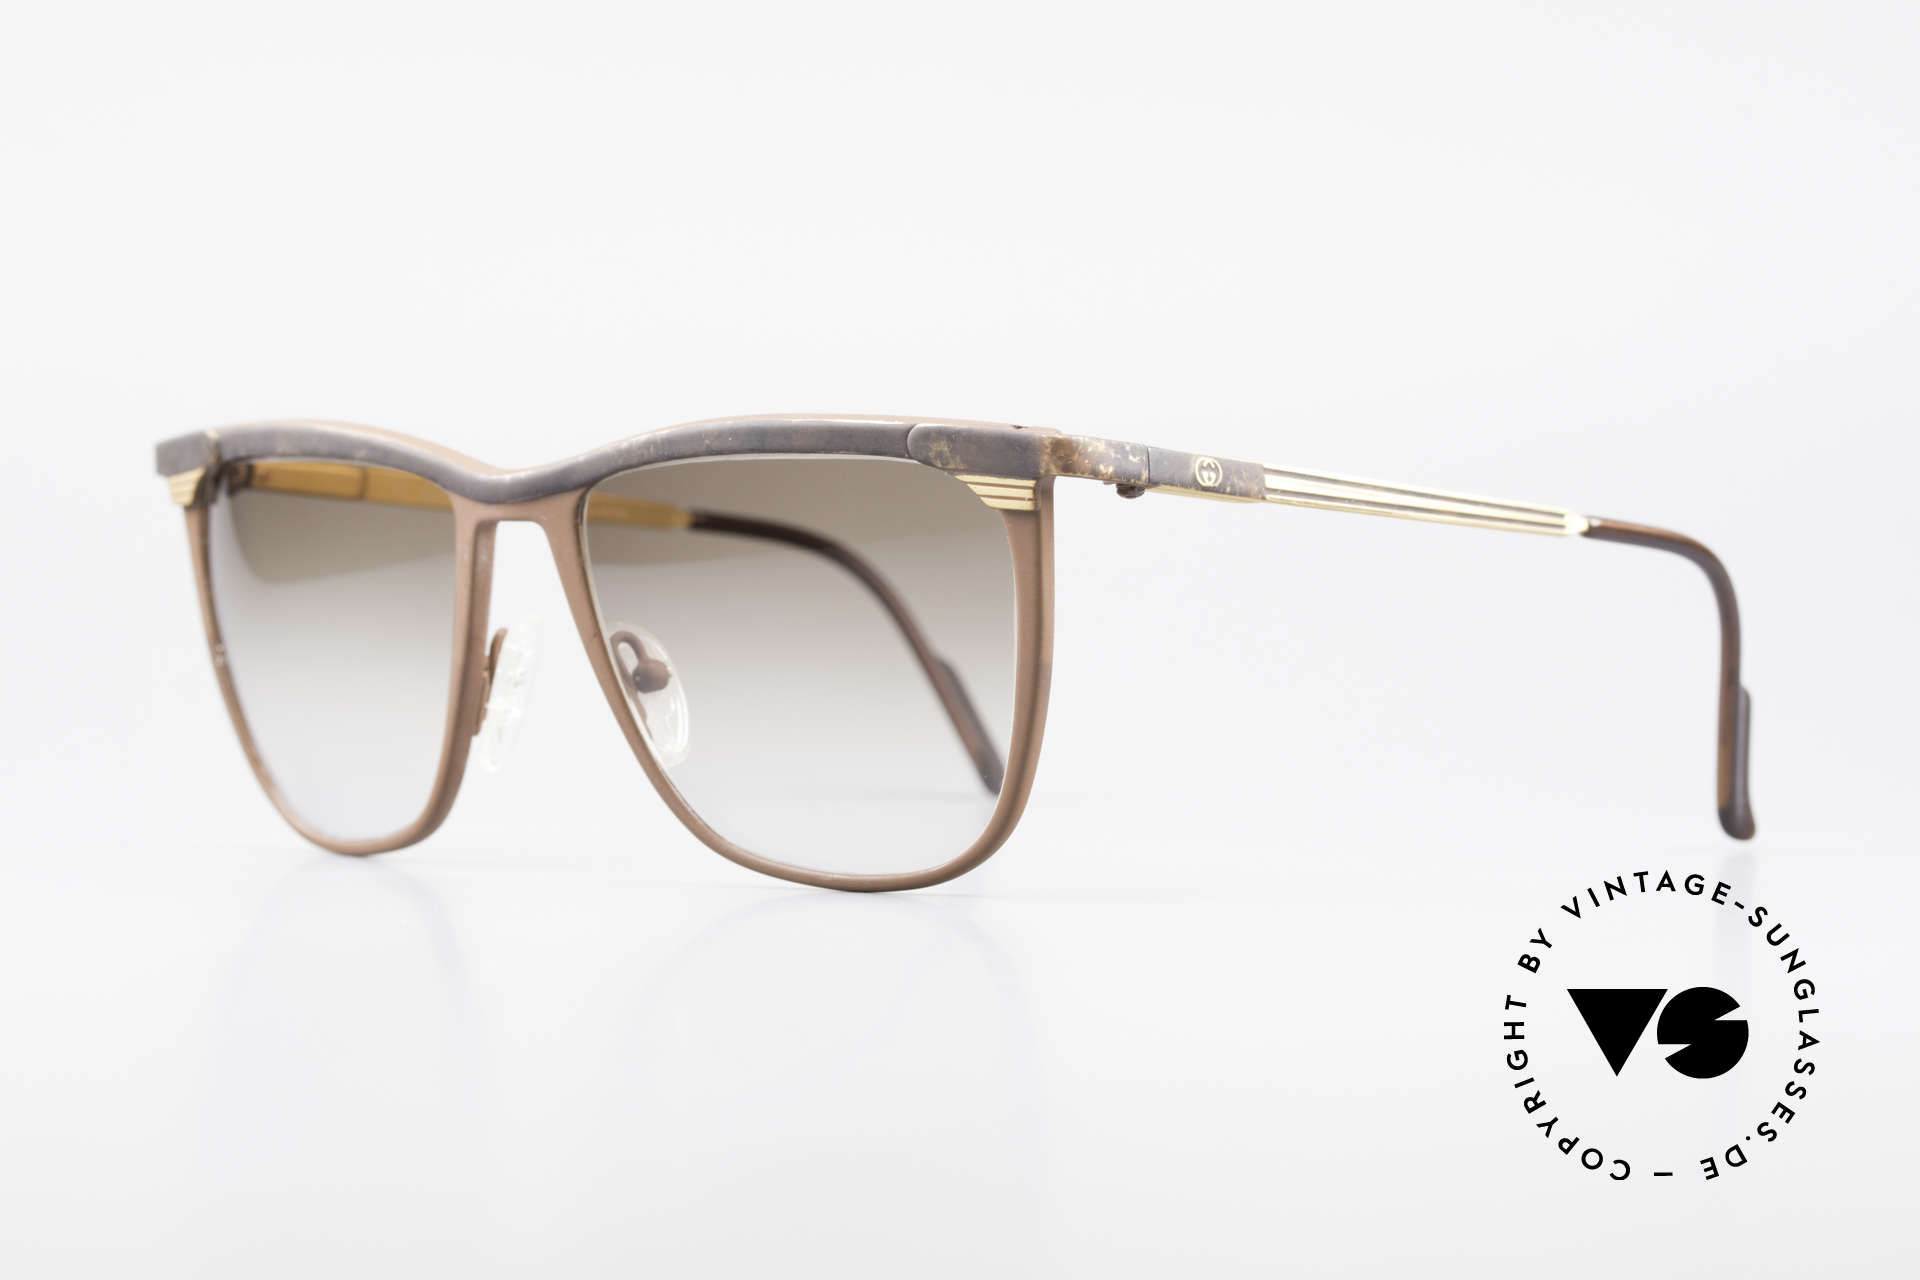 Gucci 2227 Luxury Designer Sunglasses, fully dulled paintwork and precious spring hinges, Made for Men and Women